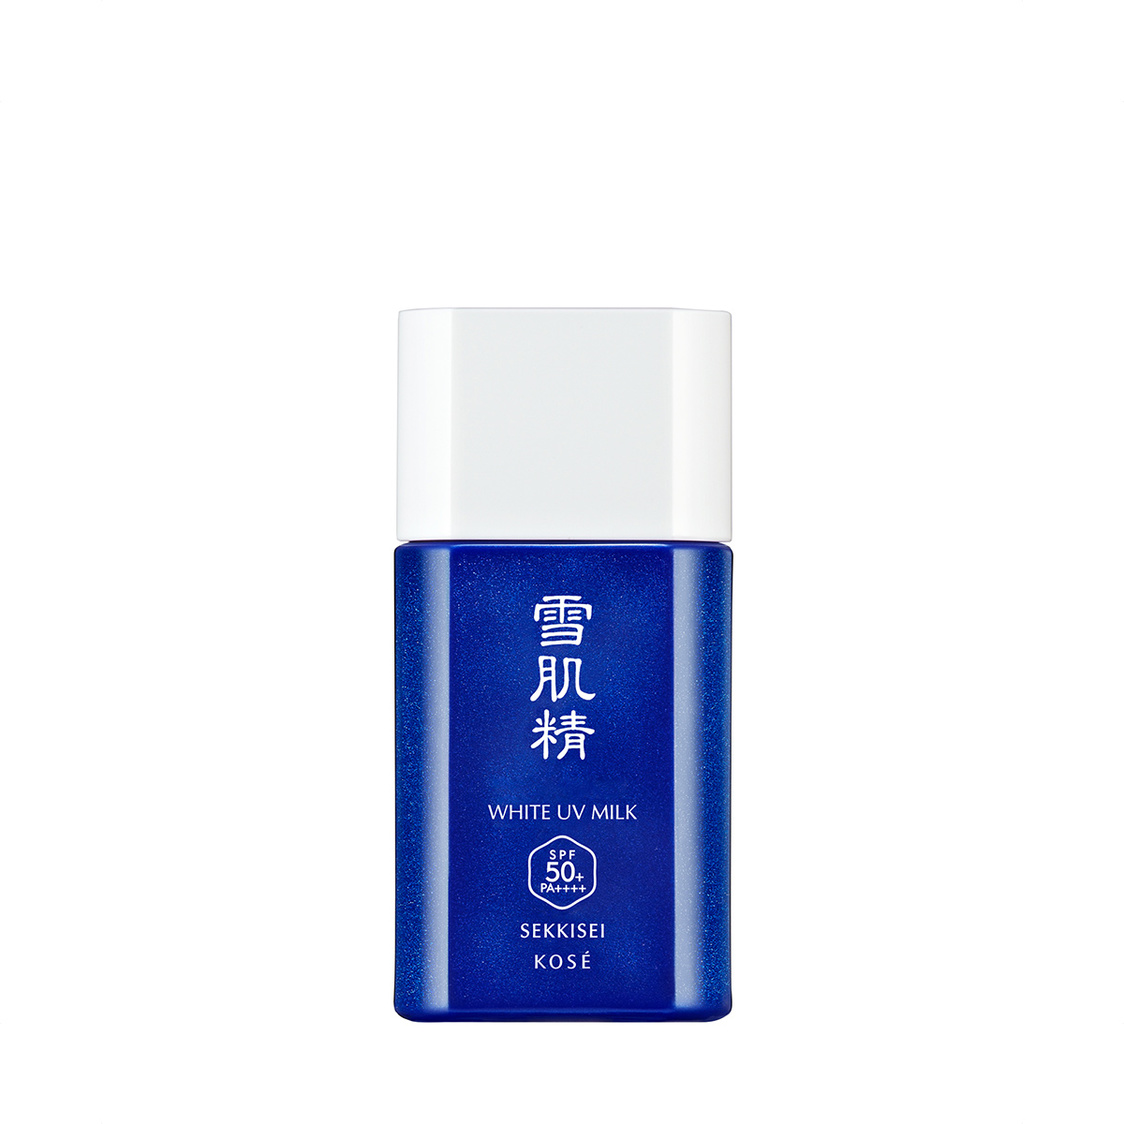 Sekkisei White UV Milk SPF50PA 60ml